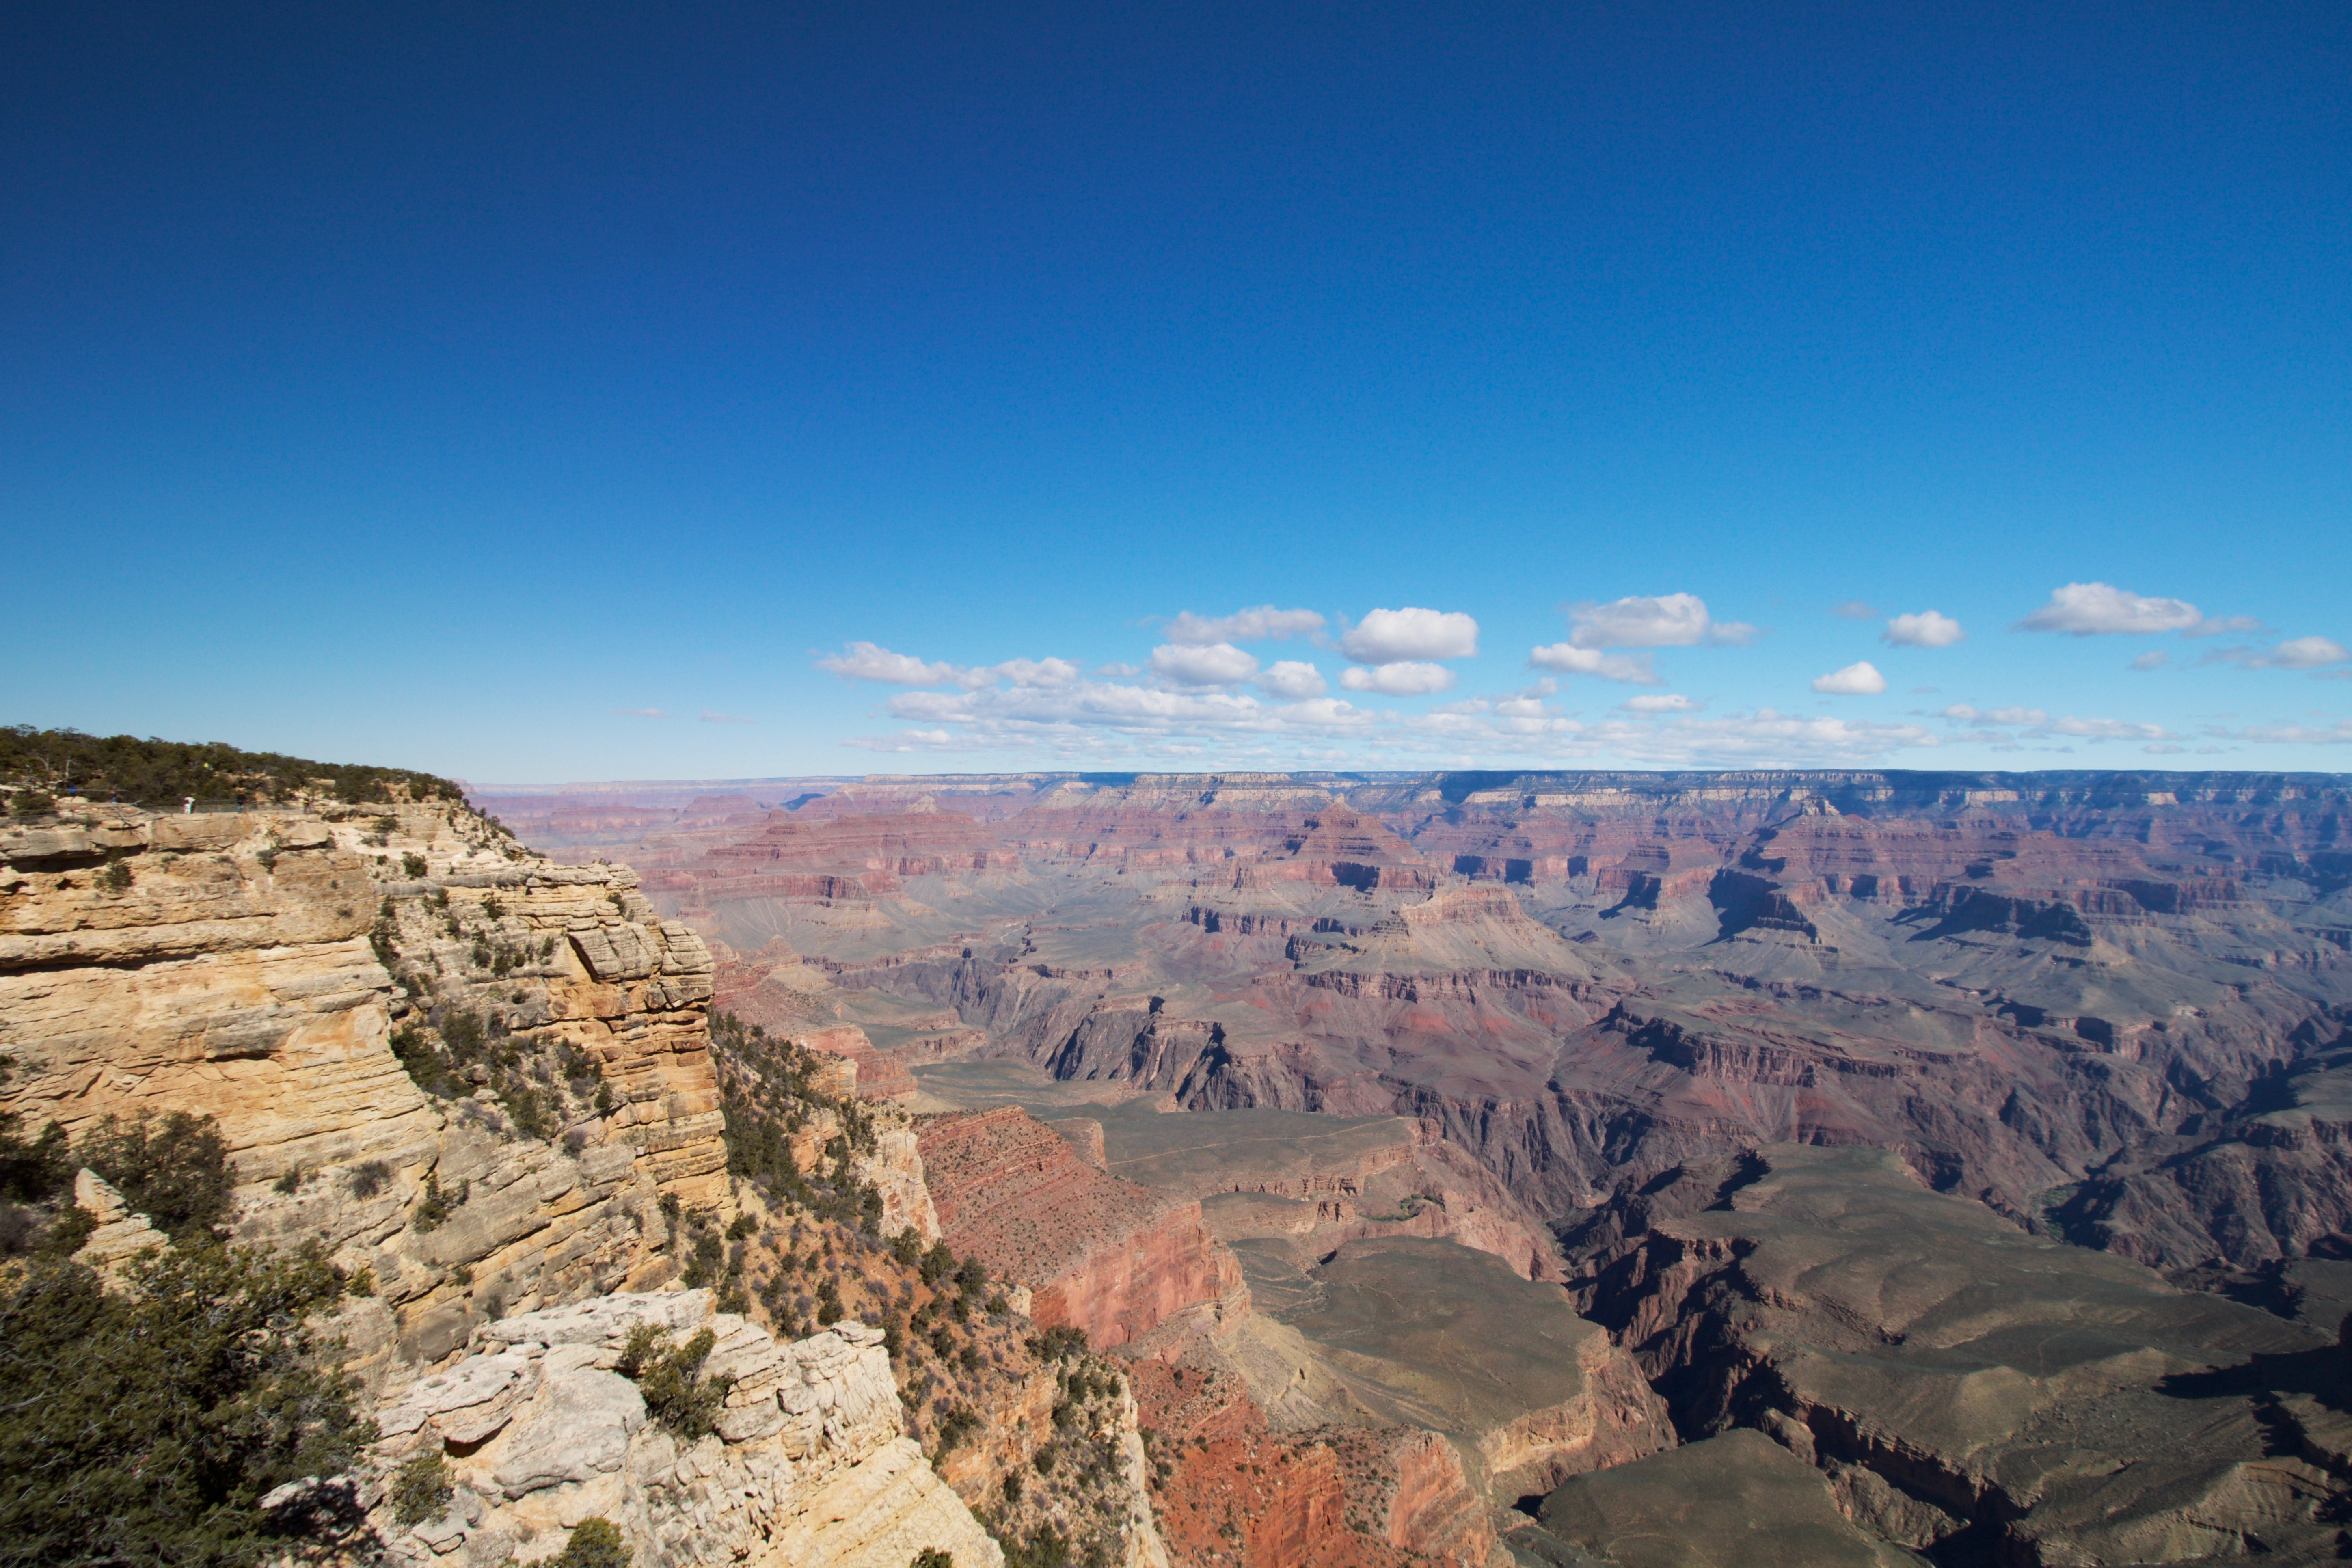 Grand Canyon during daytime